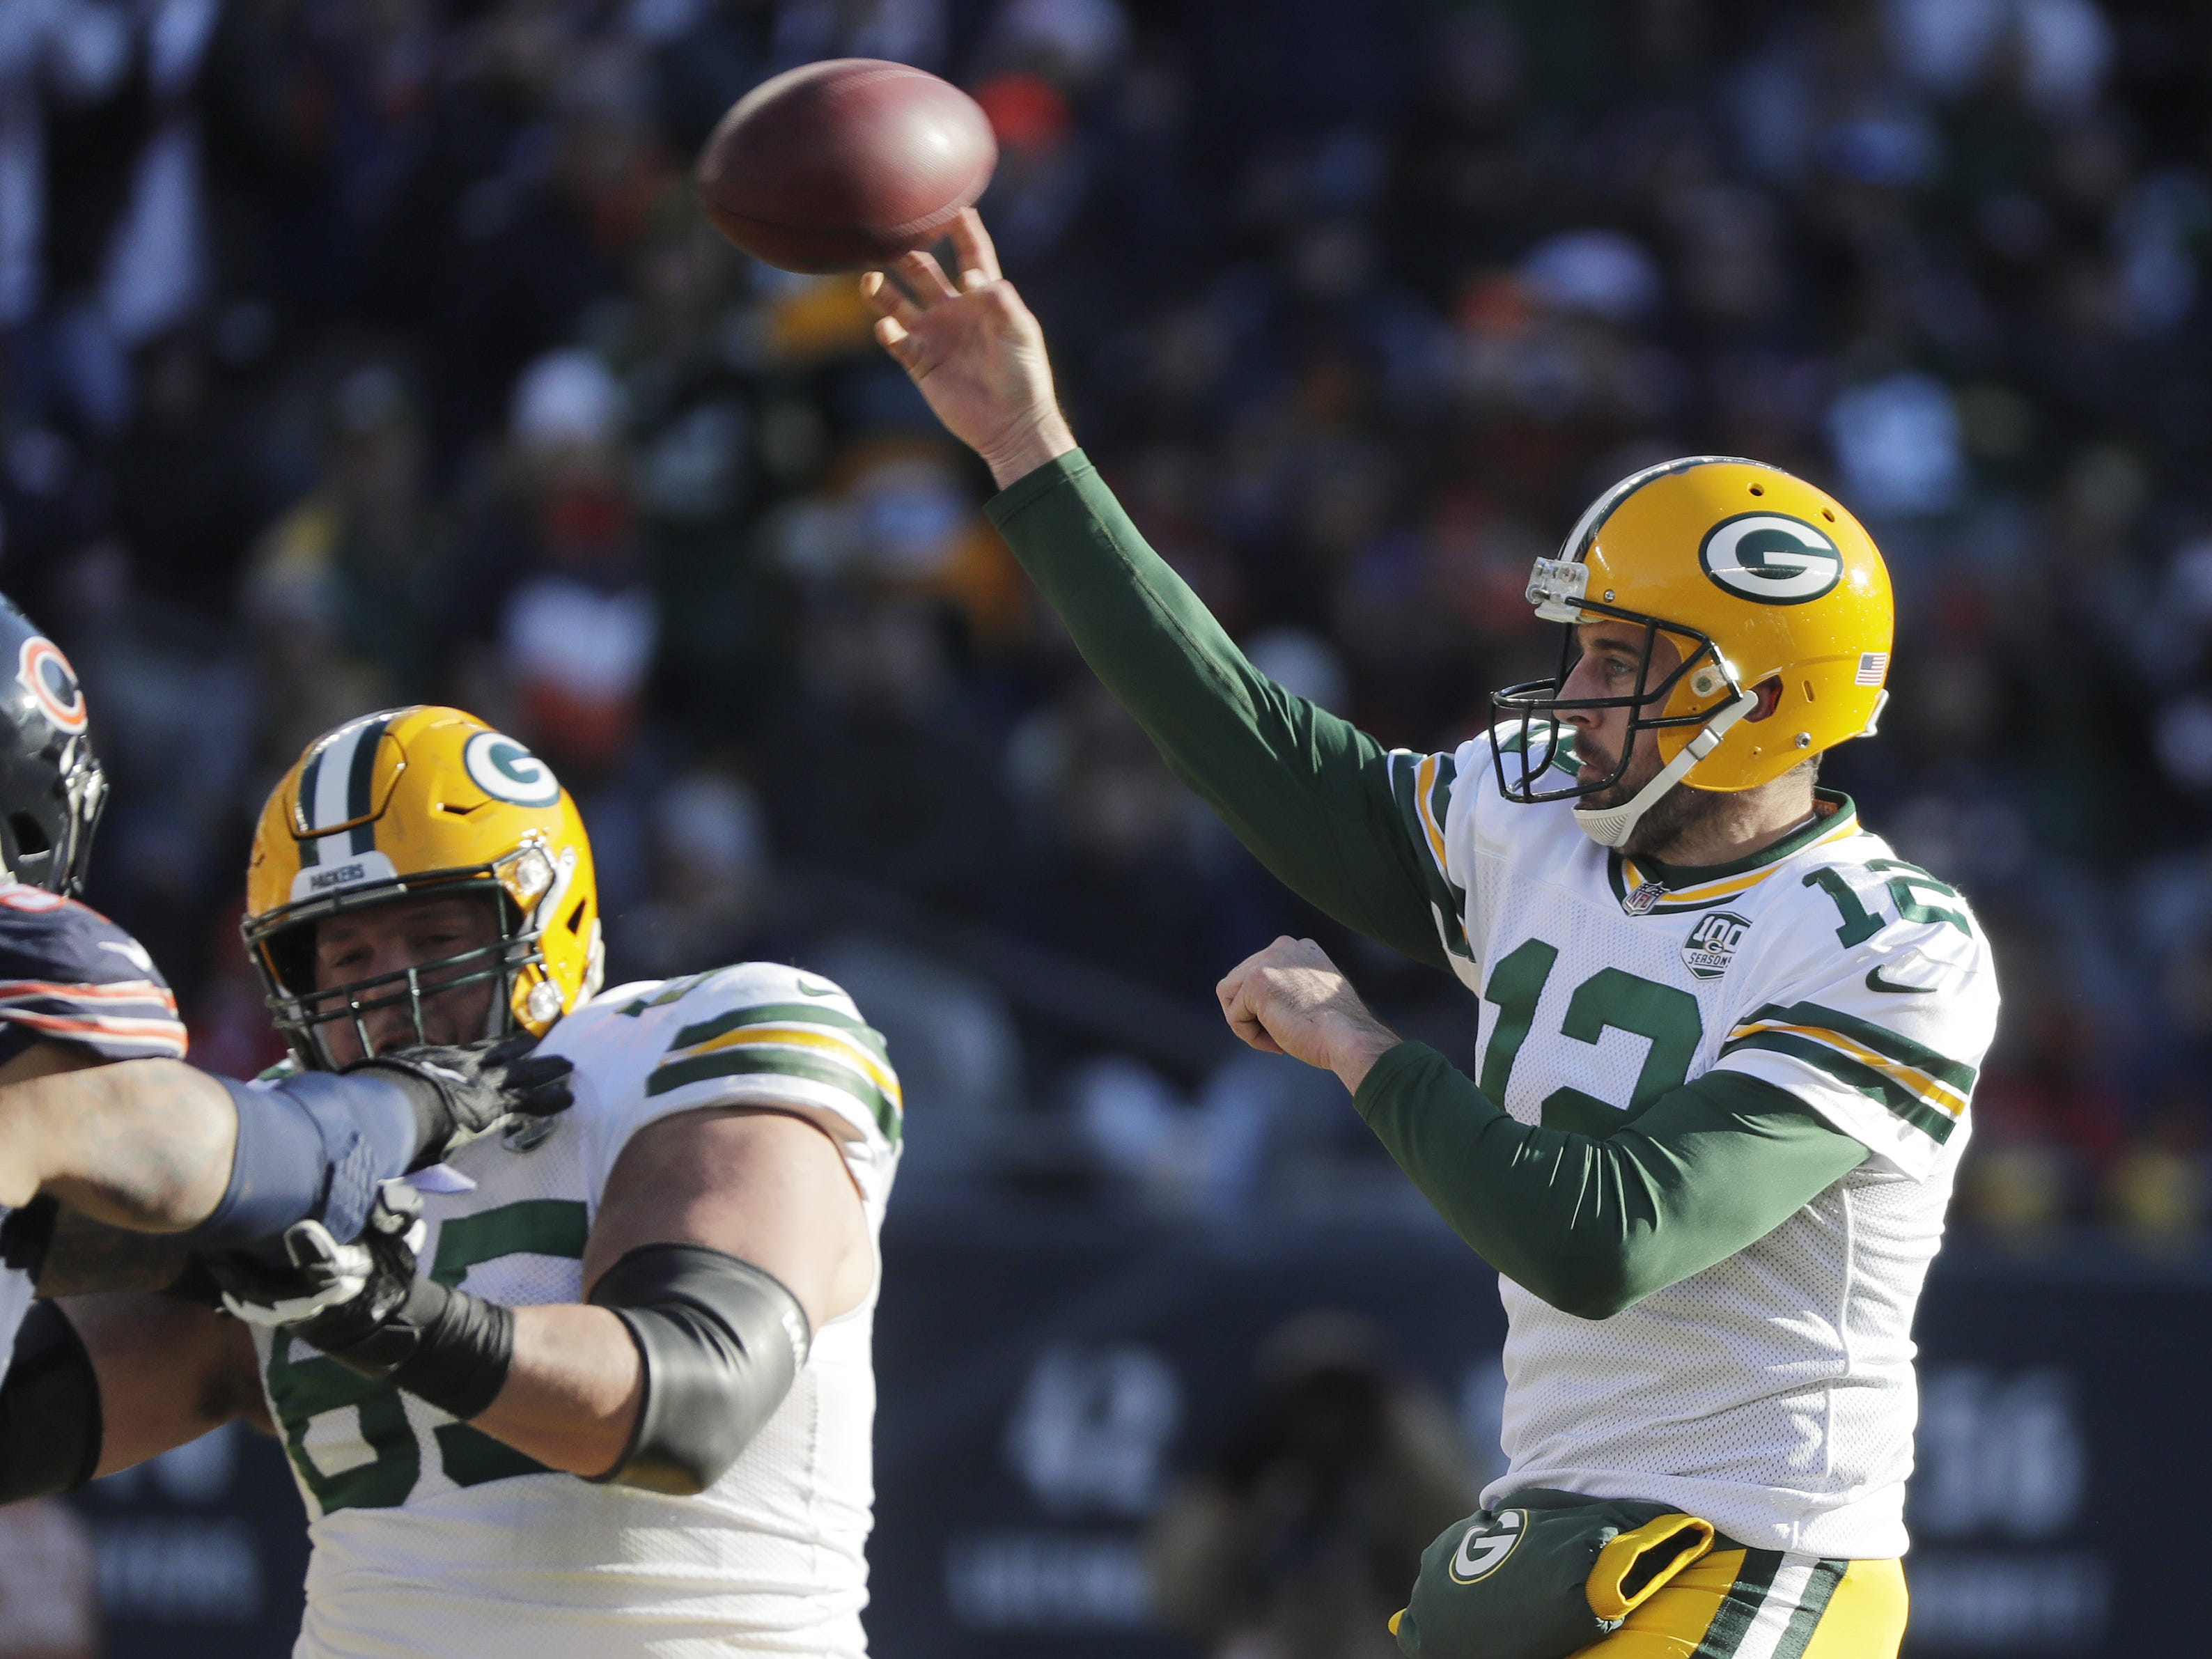 Green Bay Packers quarterback Aaron Rodgers (12) throws in the third quarter against the Chicago Bears at Soldier Field on Sunday, December 16, 2018 in Chicago, Illinois. Adam Wesley/USA TODAY NETWORK-Wis